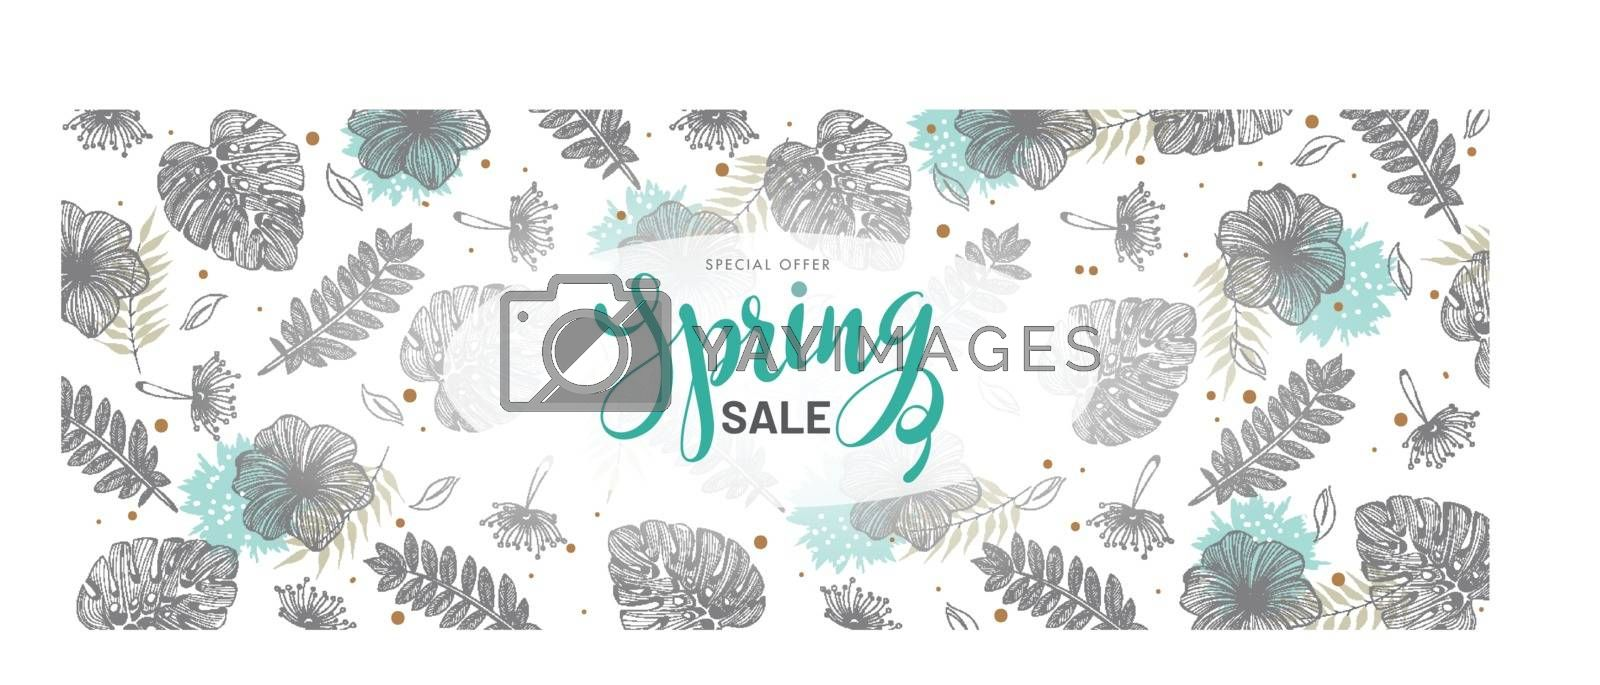 Royalty free image of Spring sale header or banner design decorated with tropical leav by aispl